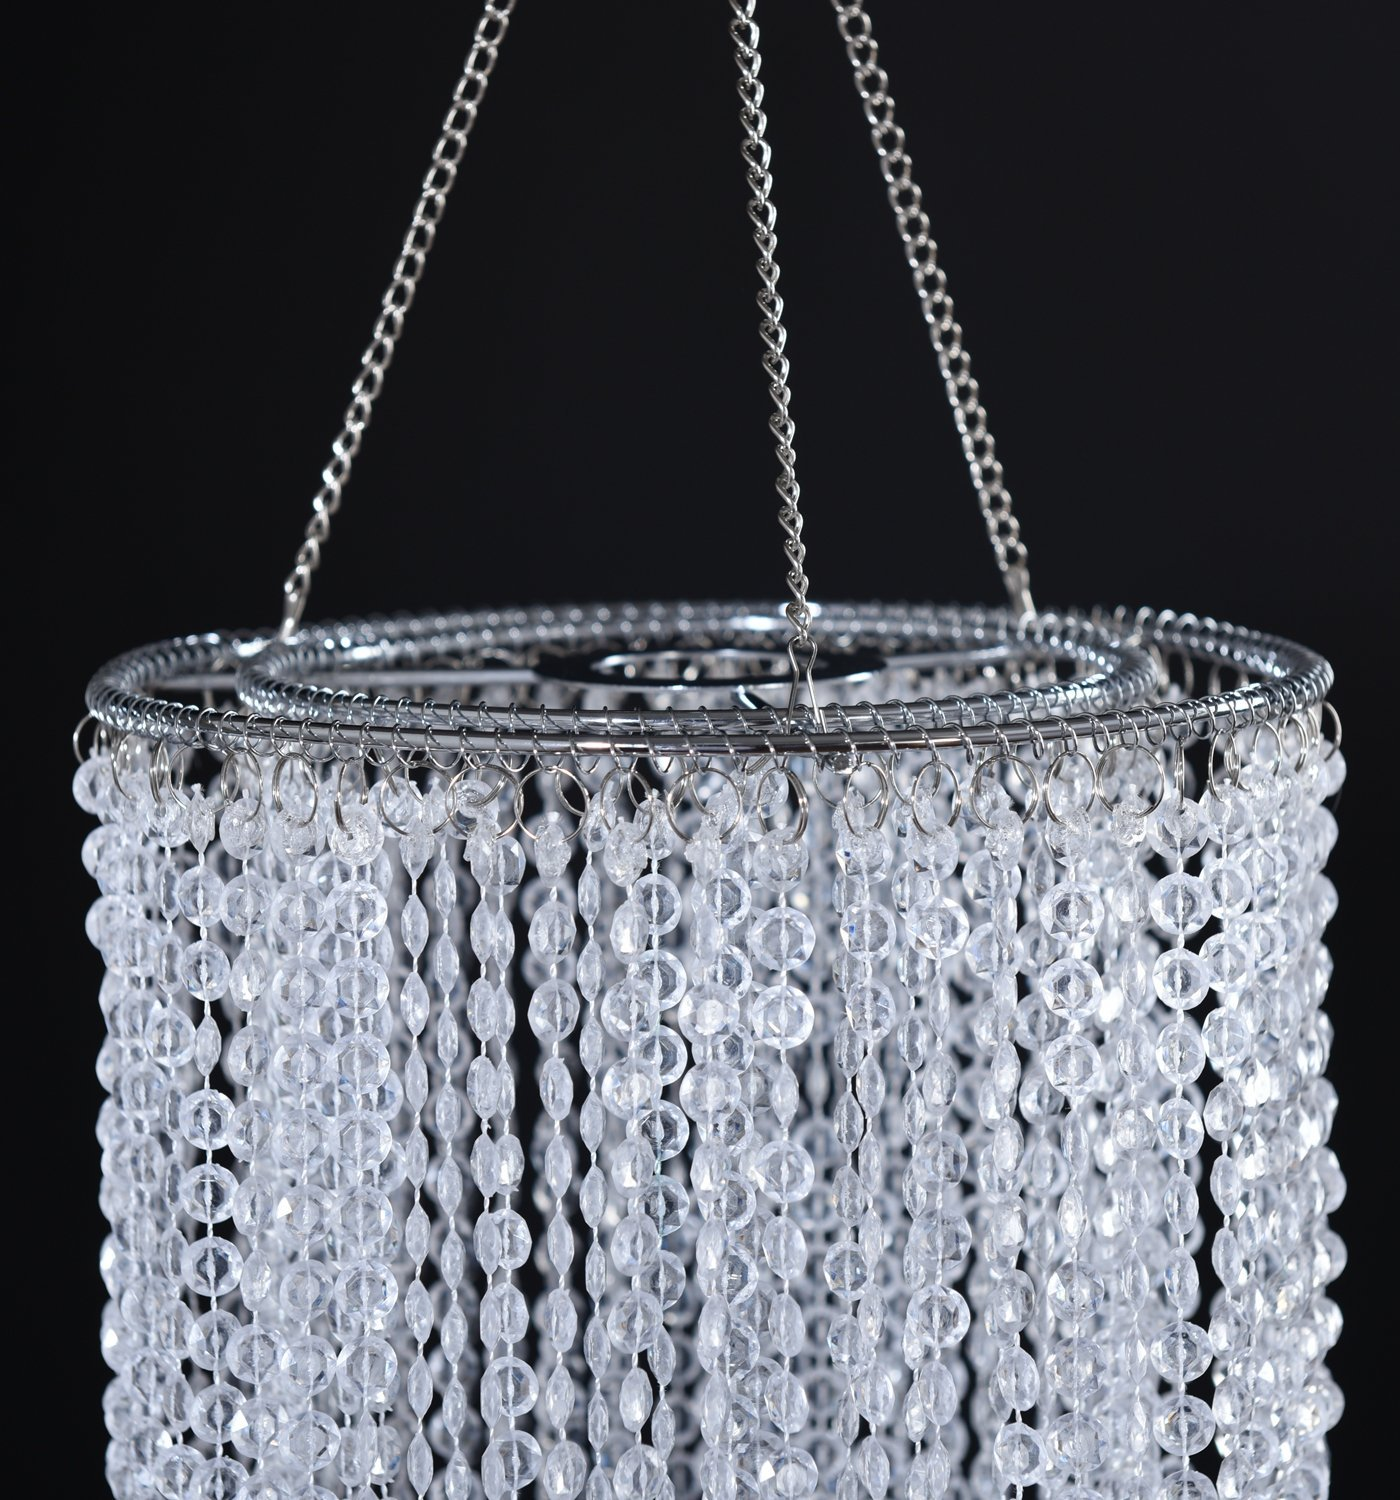 FLAVORTHING 2 Tiers Clear Chandelier great idea for Wedding